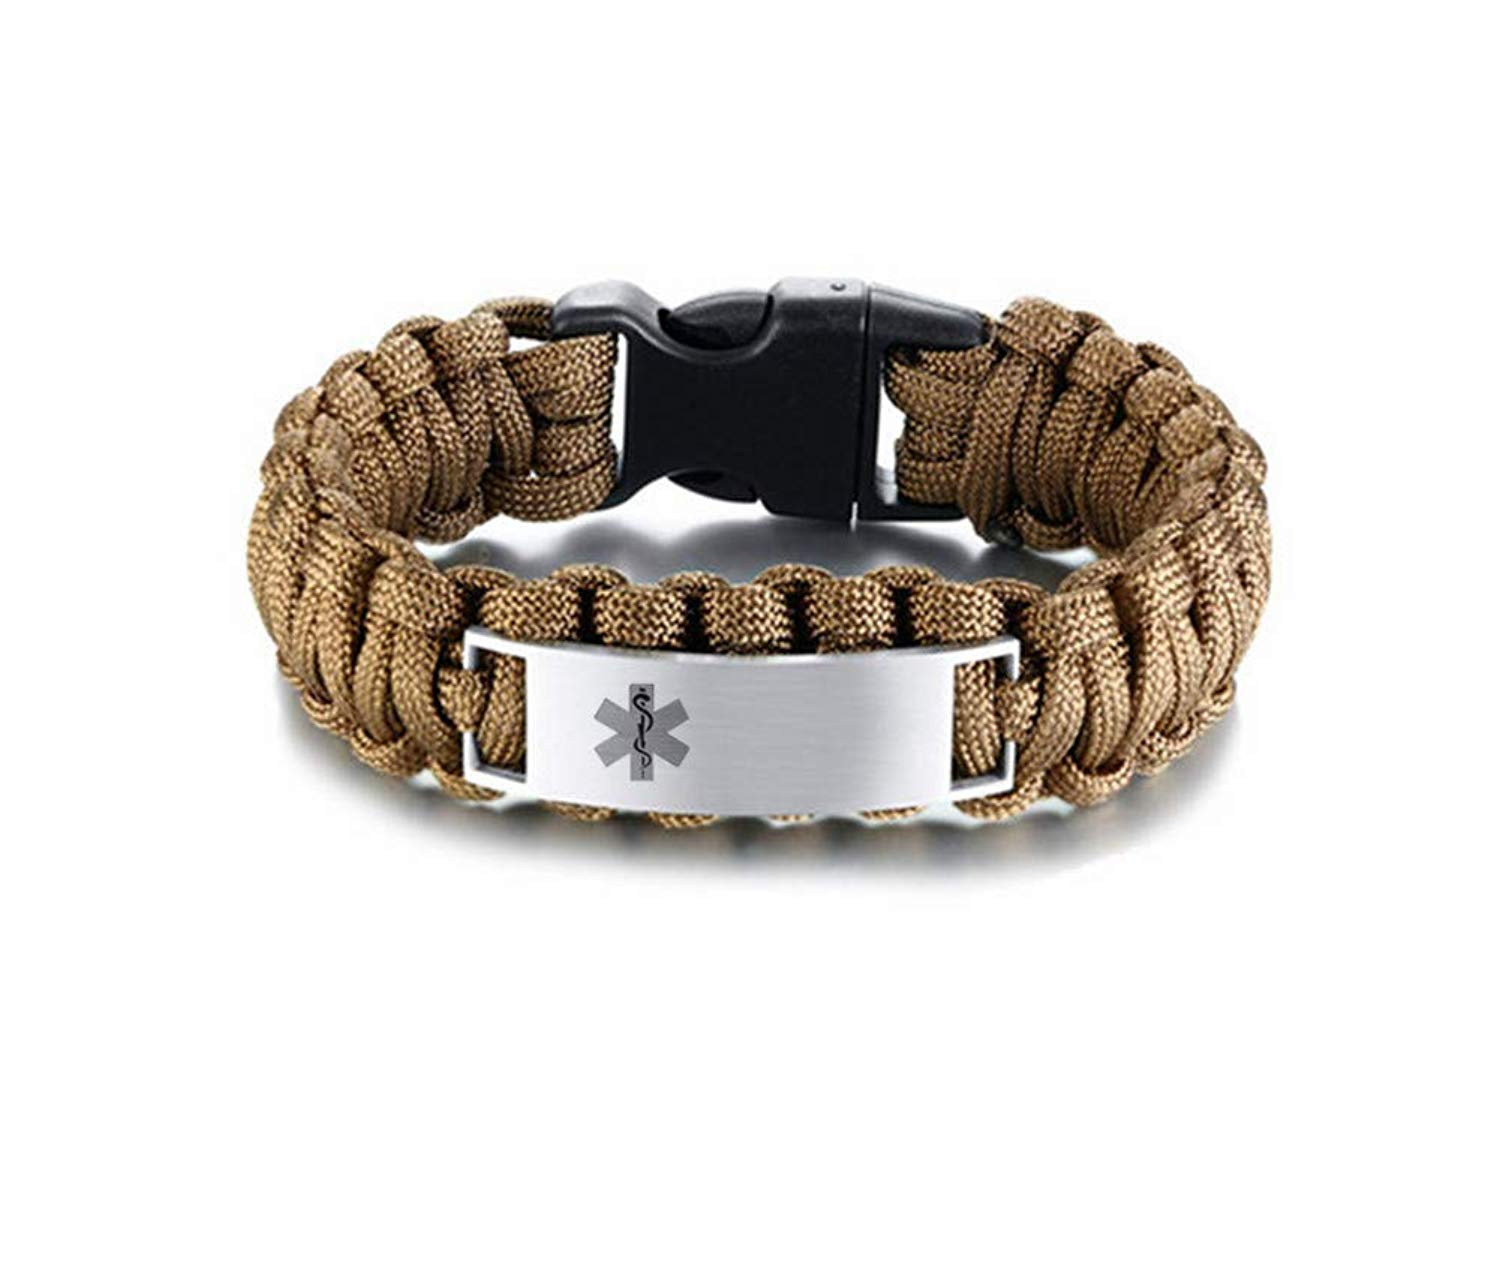 LF Stainless Steel Personalized ICE Medical Alert Outdoor Rope Paracord Survival Medic ID Bracelet Sos Emergency Cuff Bracelets for Adult Hiking Camping Hunting Activities,Free Engraving Customized